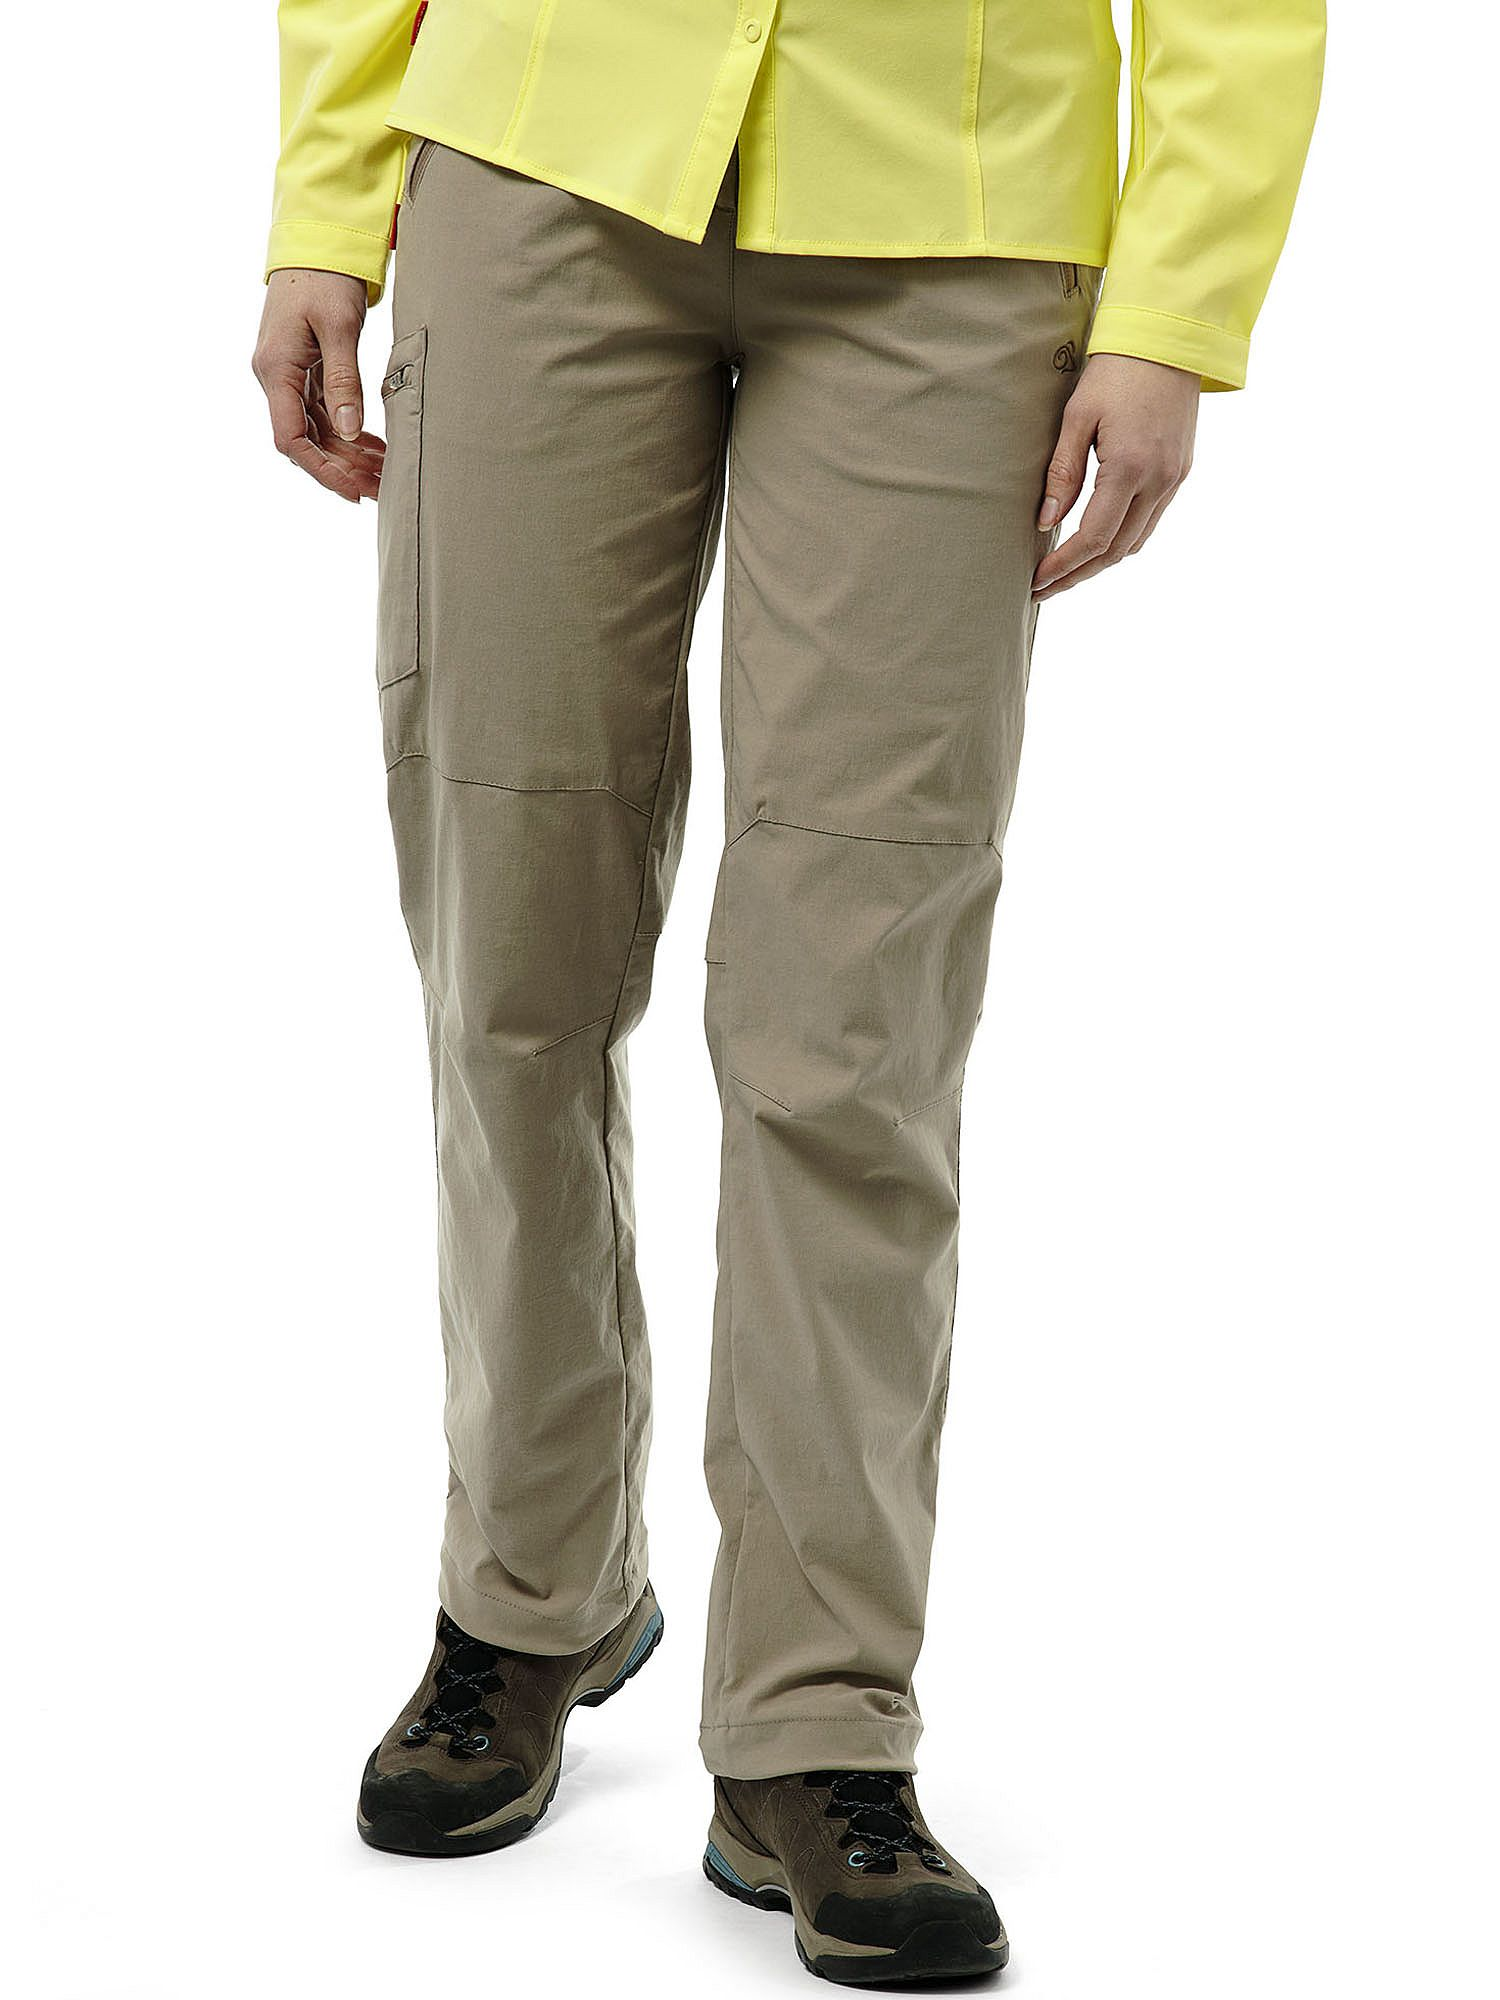 Craghoppers Womens/Ladies NosiLife Pro Cool Walking